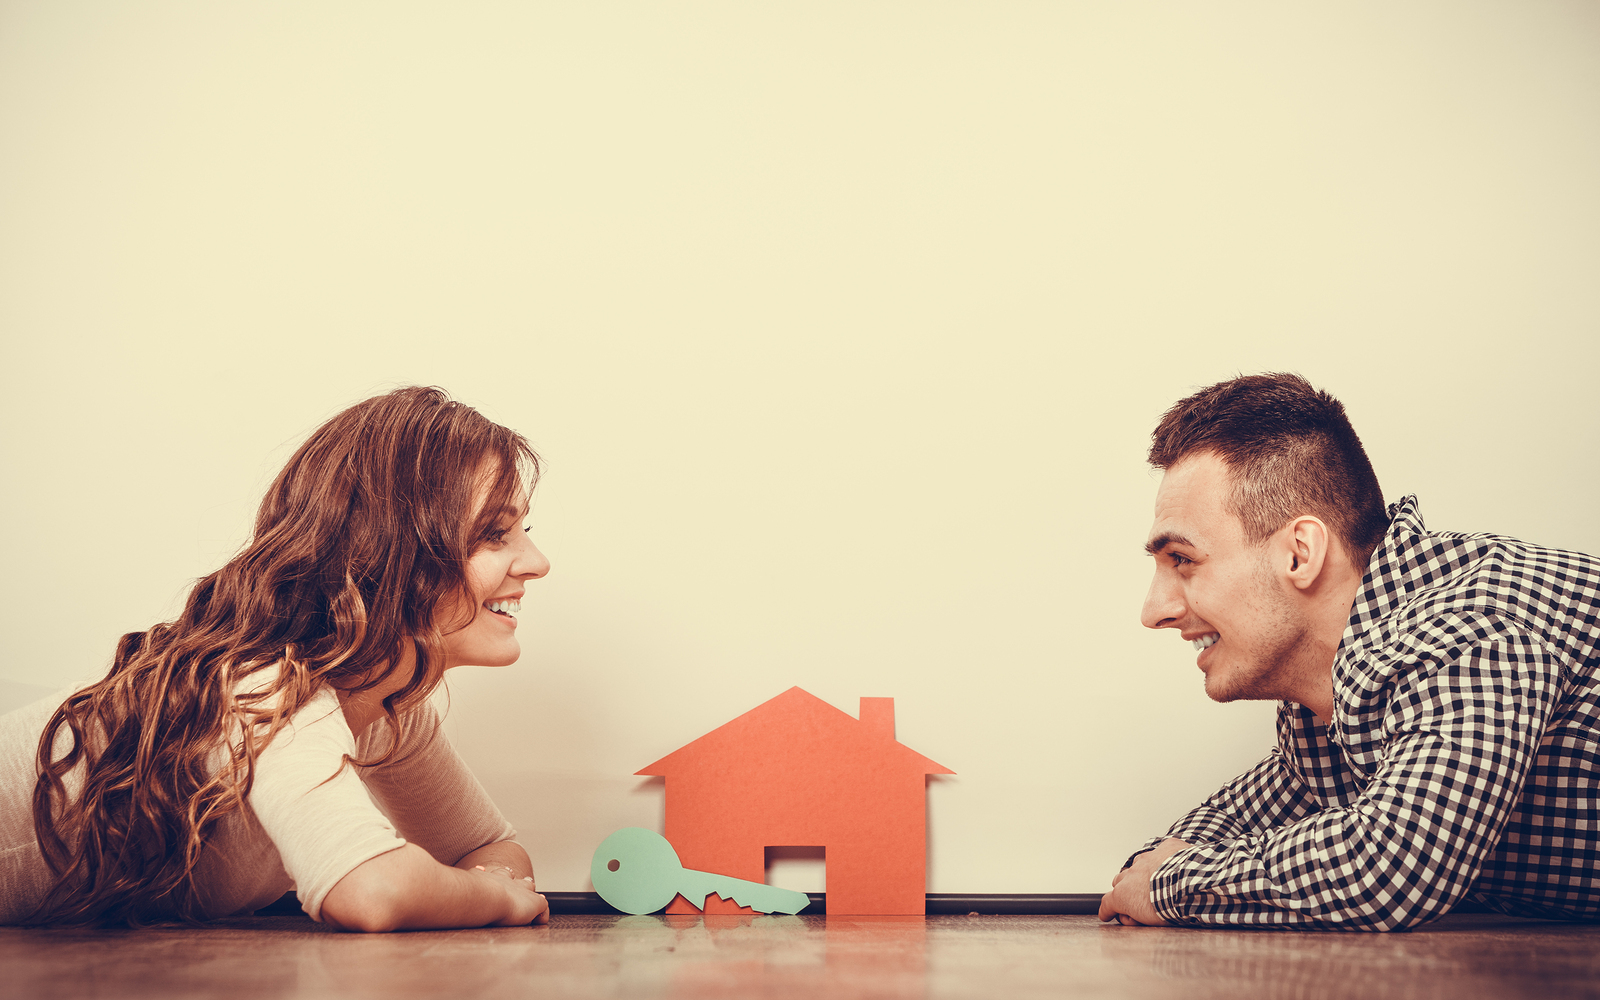 Cashing in on Millennials: They Love to Rent